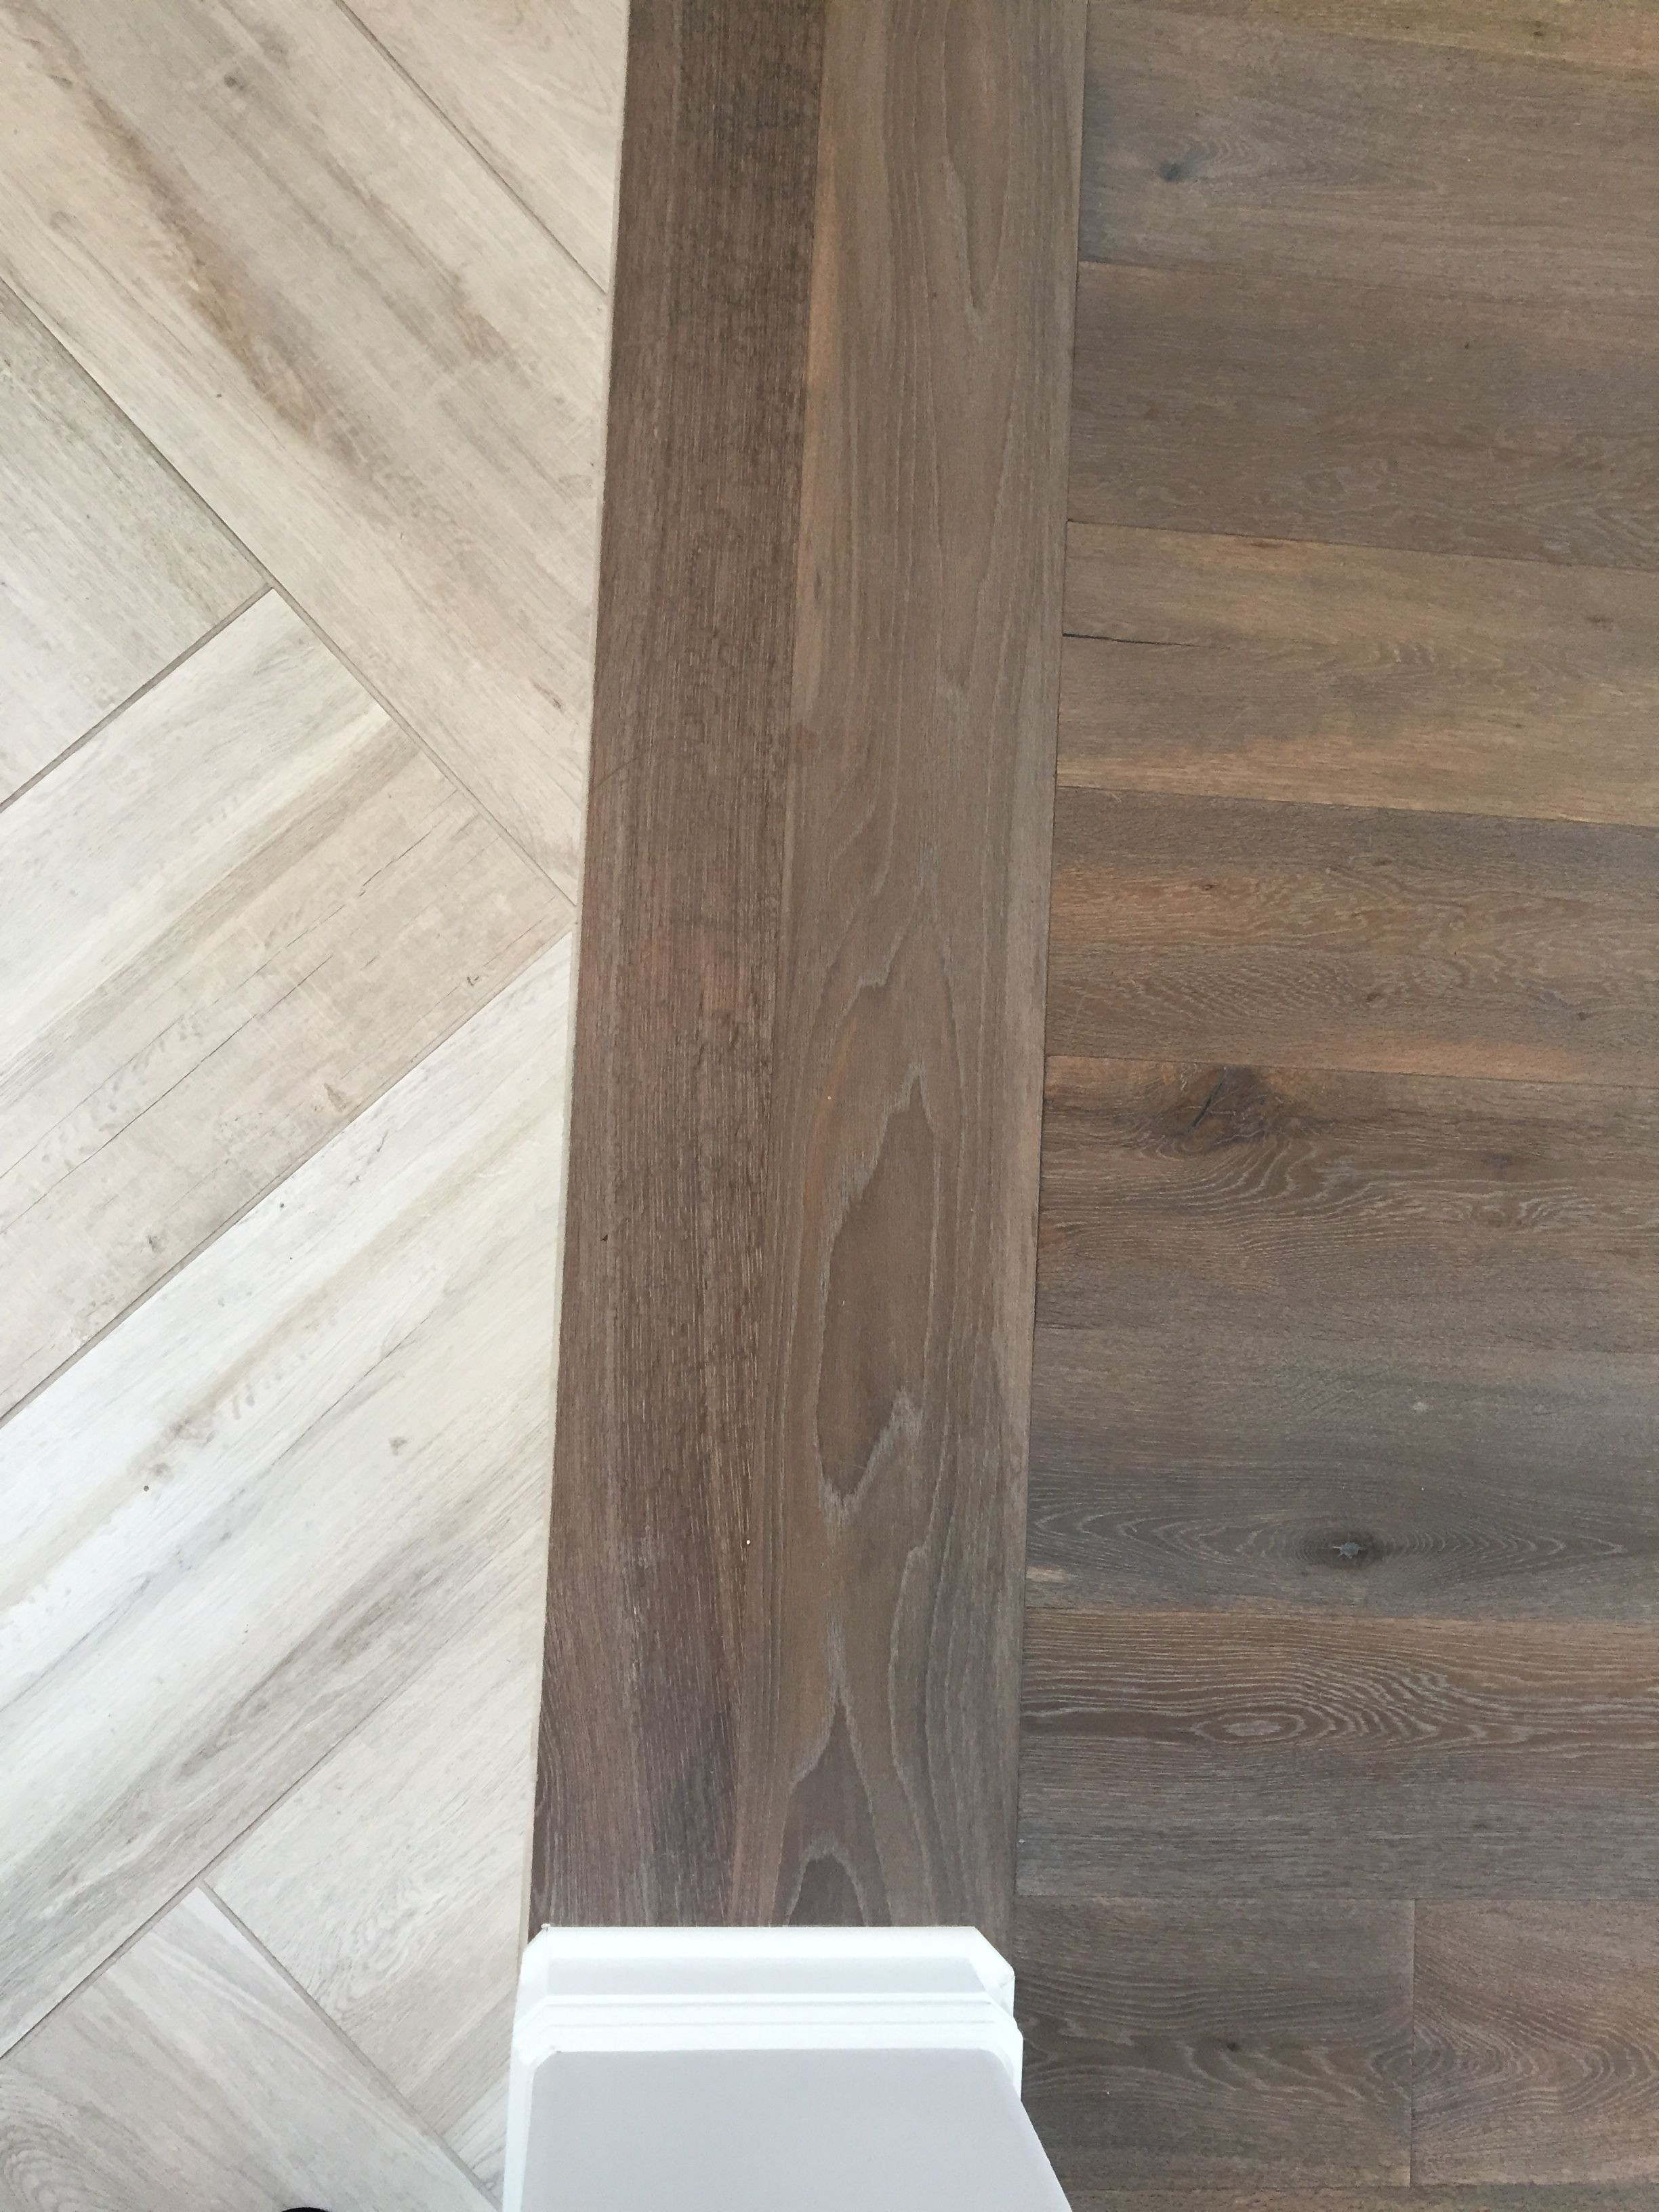 Hardwood Floor Options Home Of Floor Transition Laminate to Herringbone Tile Pattern Model Throughout Floor Transition Laminate to Herringbone Tile Pattern